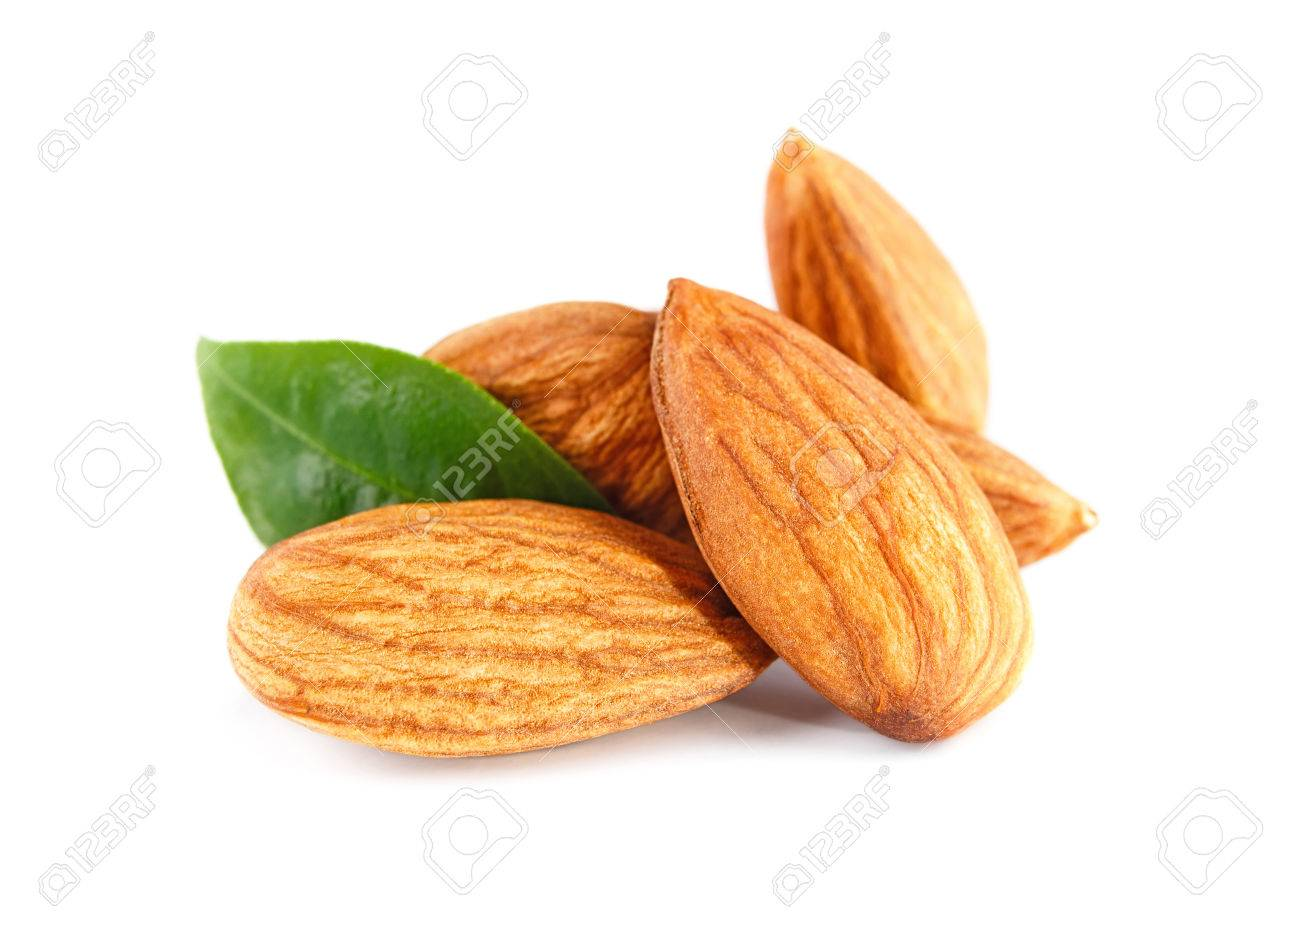 Almonds nuts isolated on white - 61662839